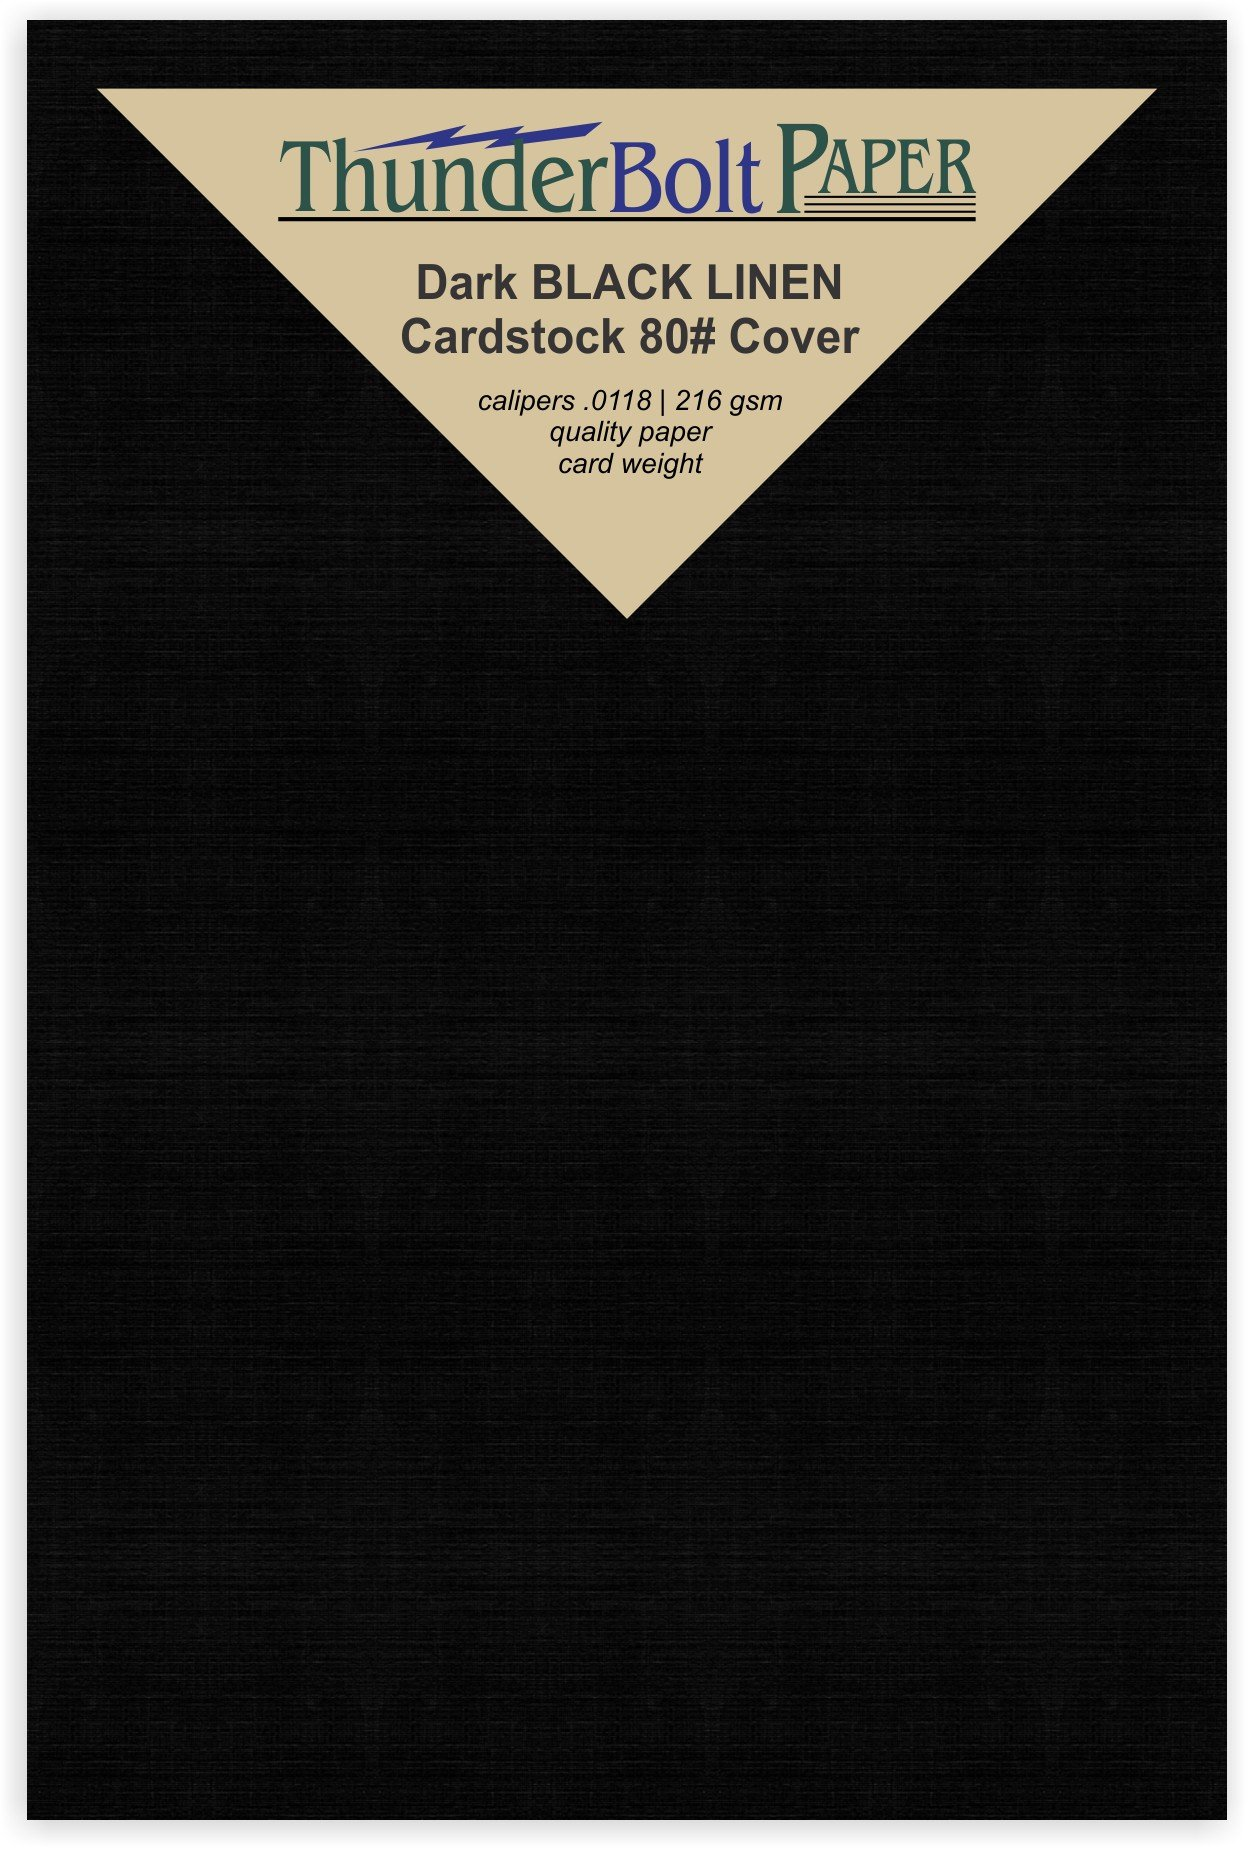 350 Black Linen 80# Cover Paper Sheets - 3'' X 5'' (3X5 Inches) Photo| Index Card|Frame Size - Card Weight - Deep Dye, Fine Linen Textured Finish - Quality Cardstock